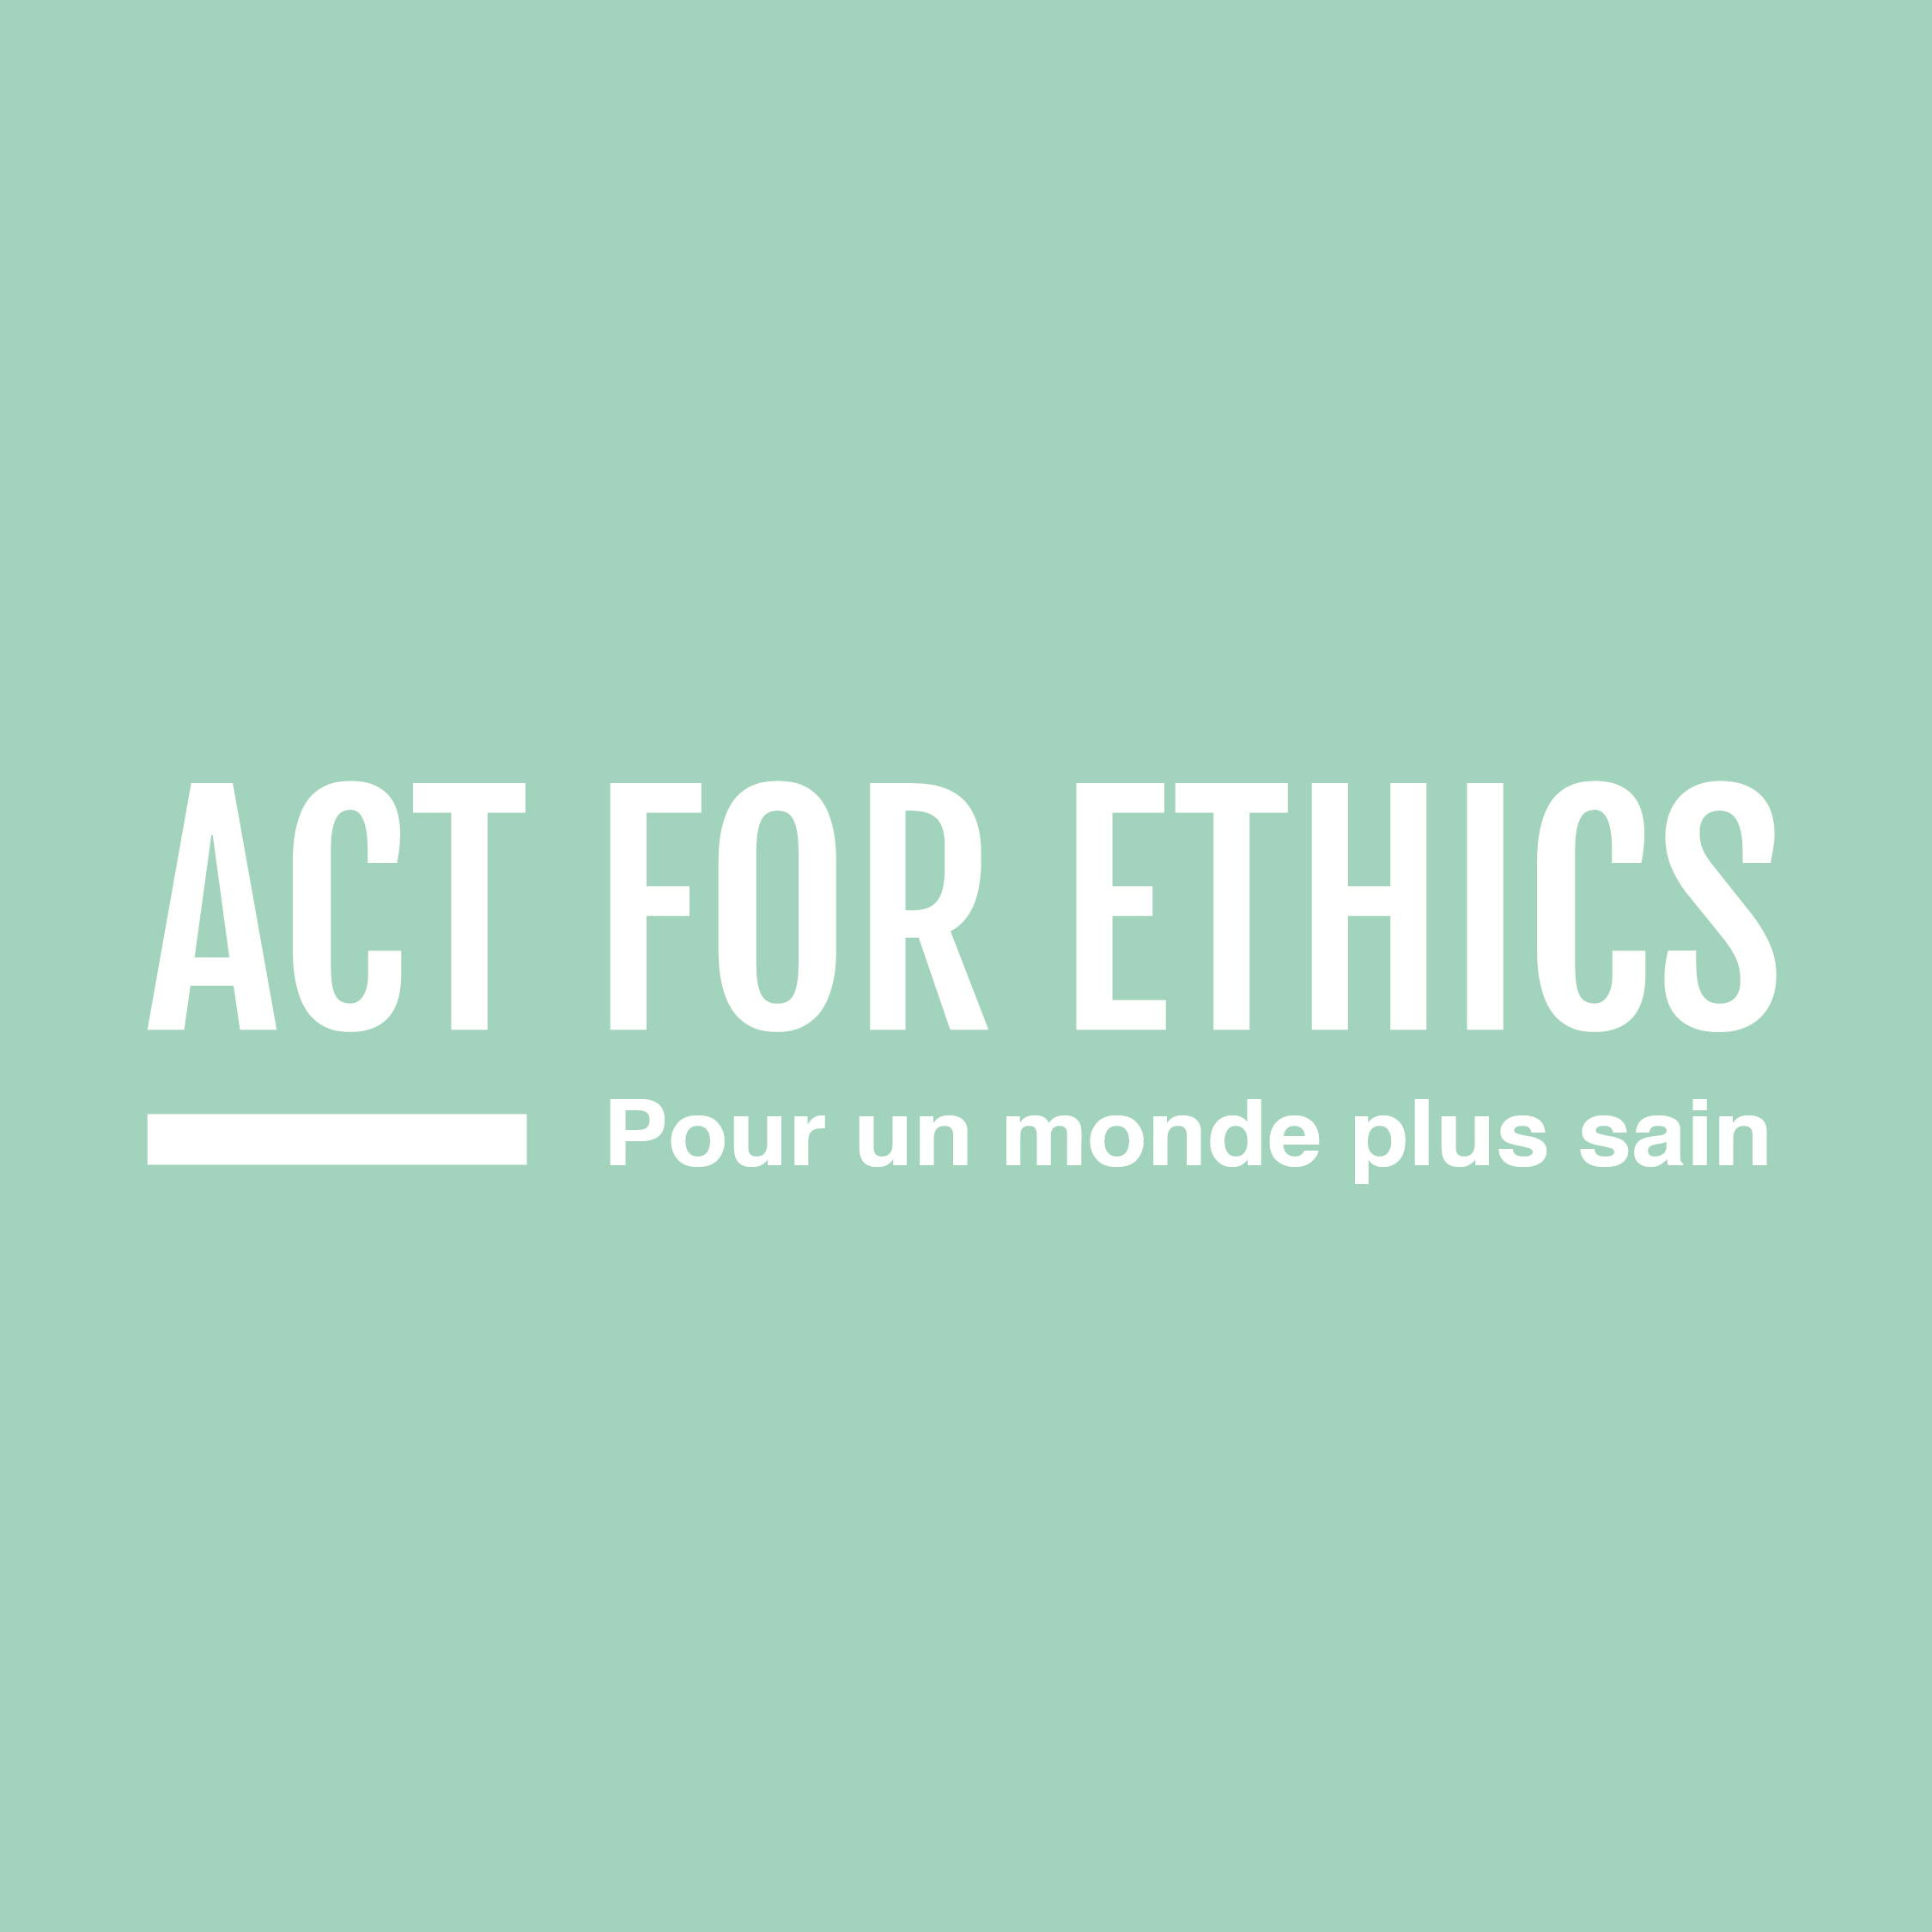 act for ethics, monde